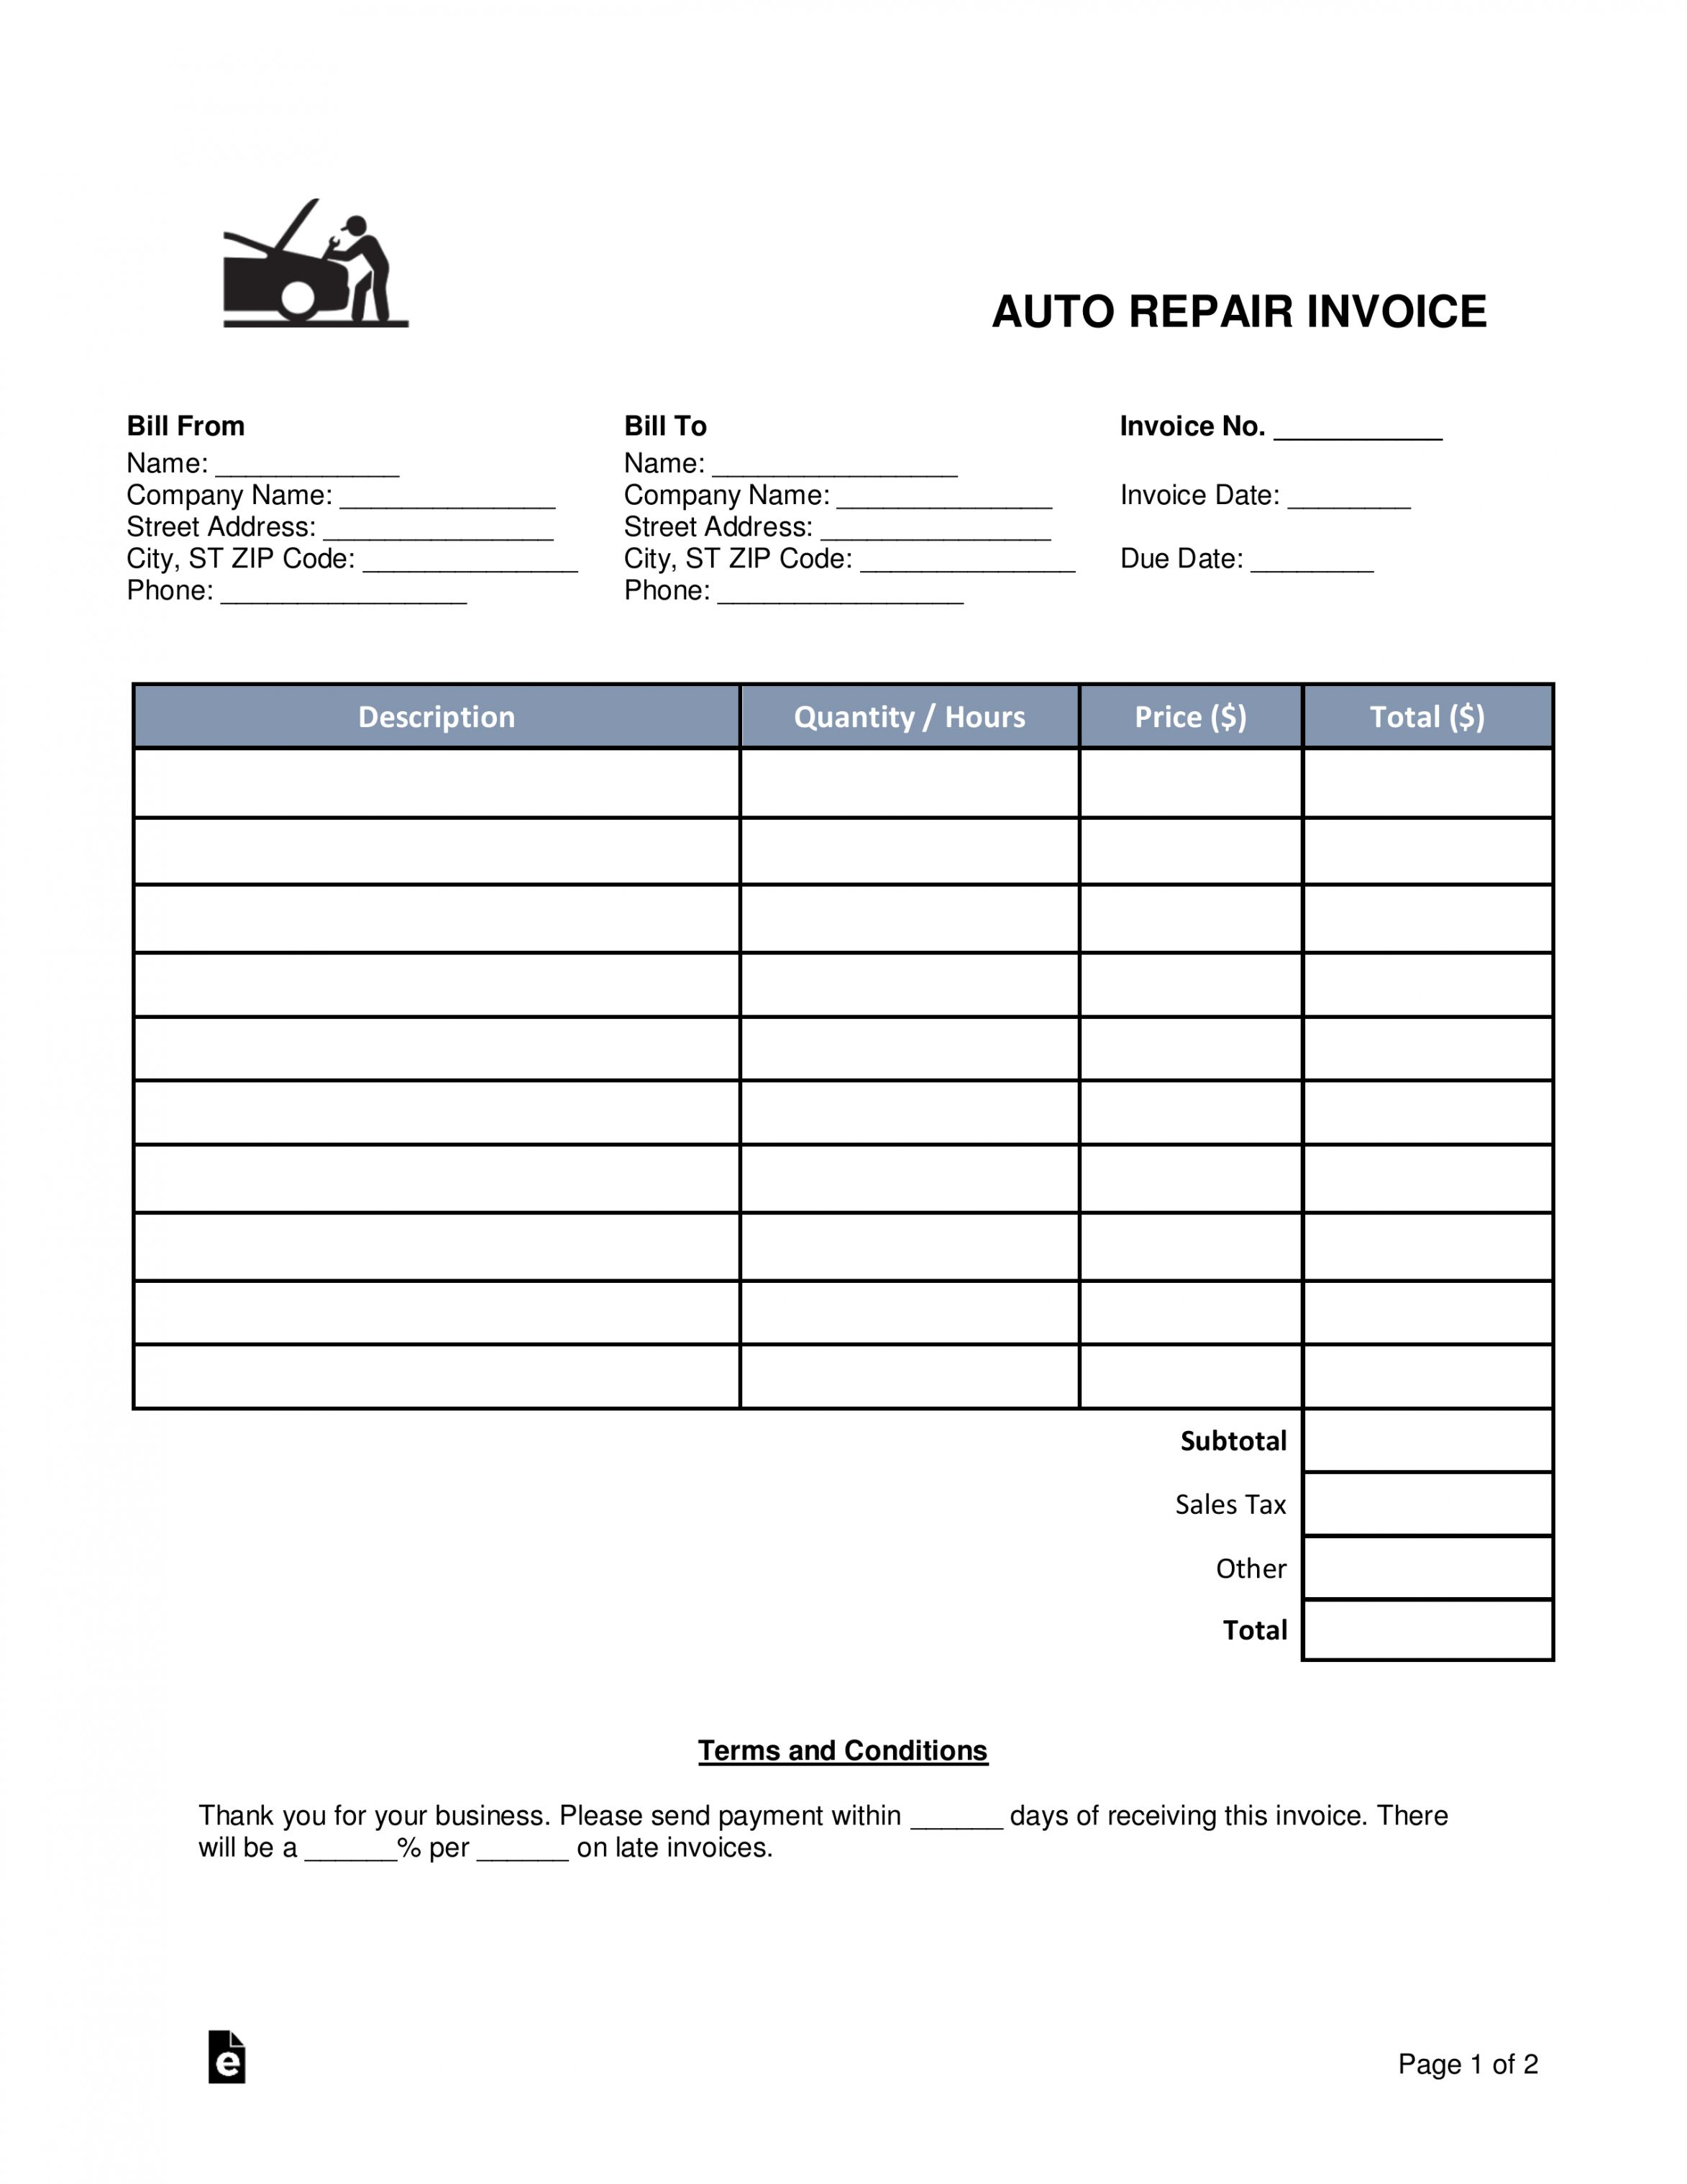 Get Our Image Of Auto Body Work Order Template For Free Invoice Template Invoice Template Word Estimate Template